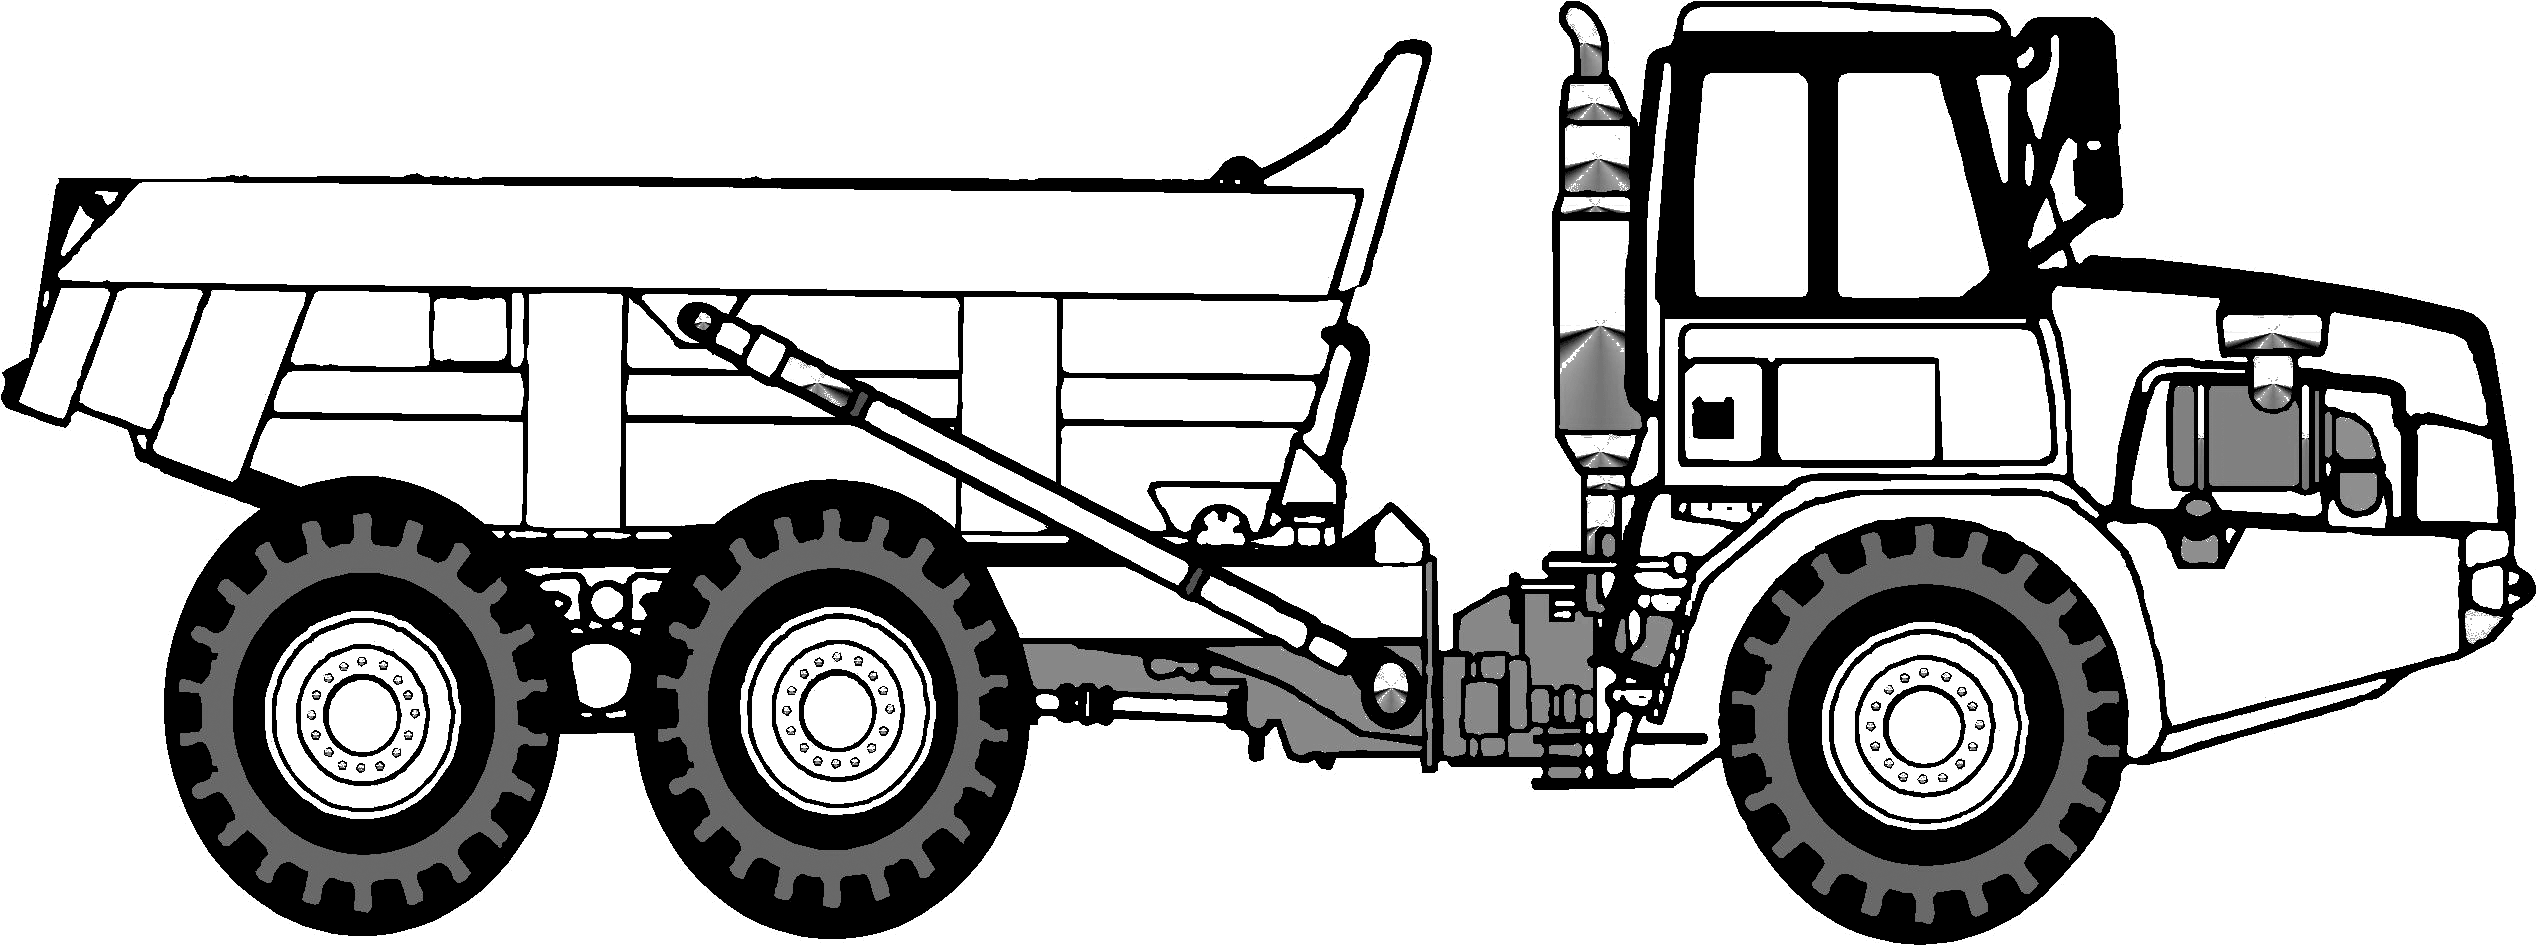 Articulated Vehicles Clipart 20 Free Cliparts Download